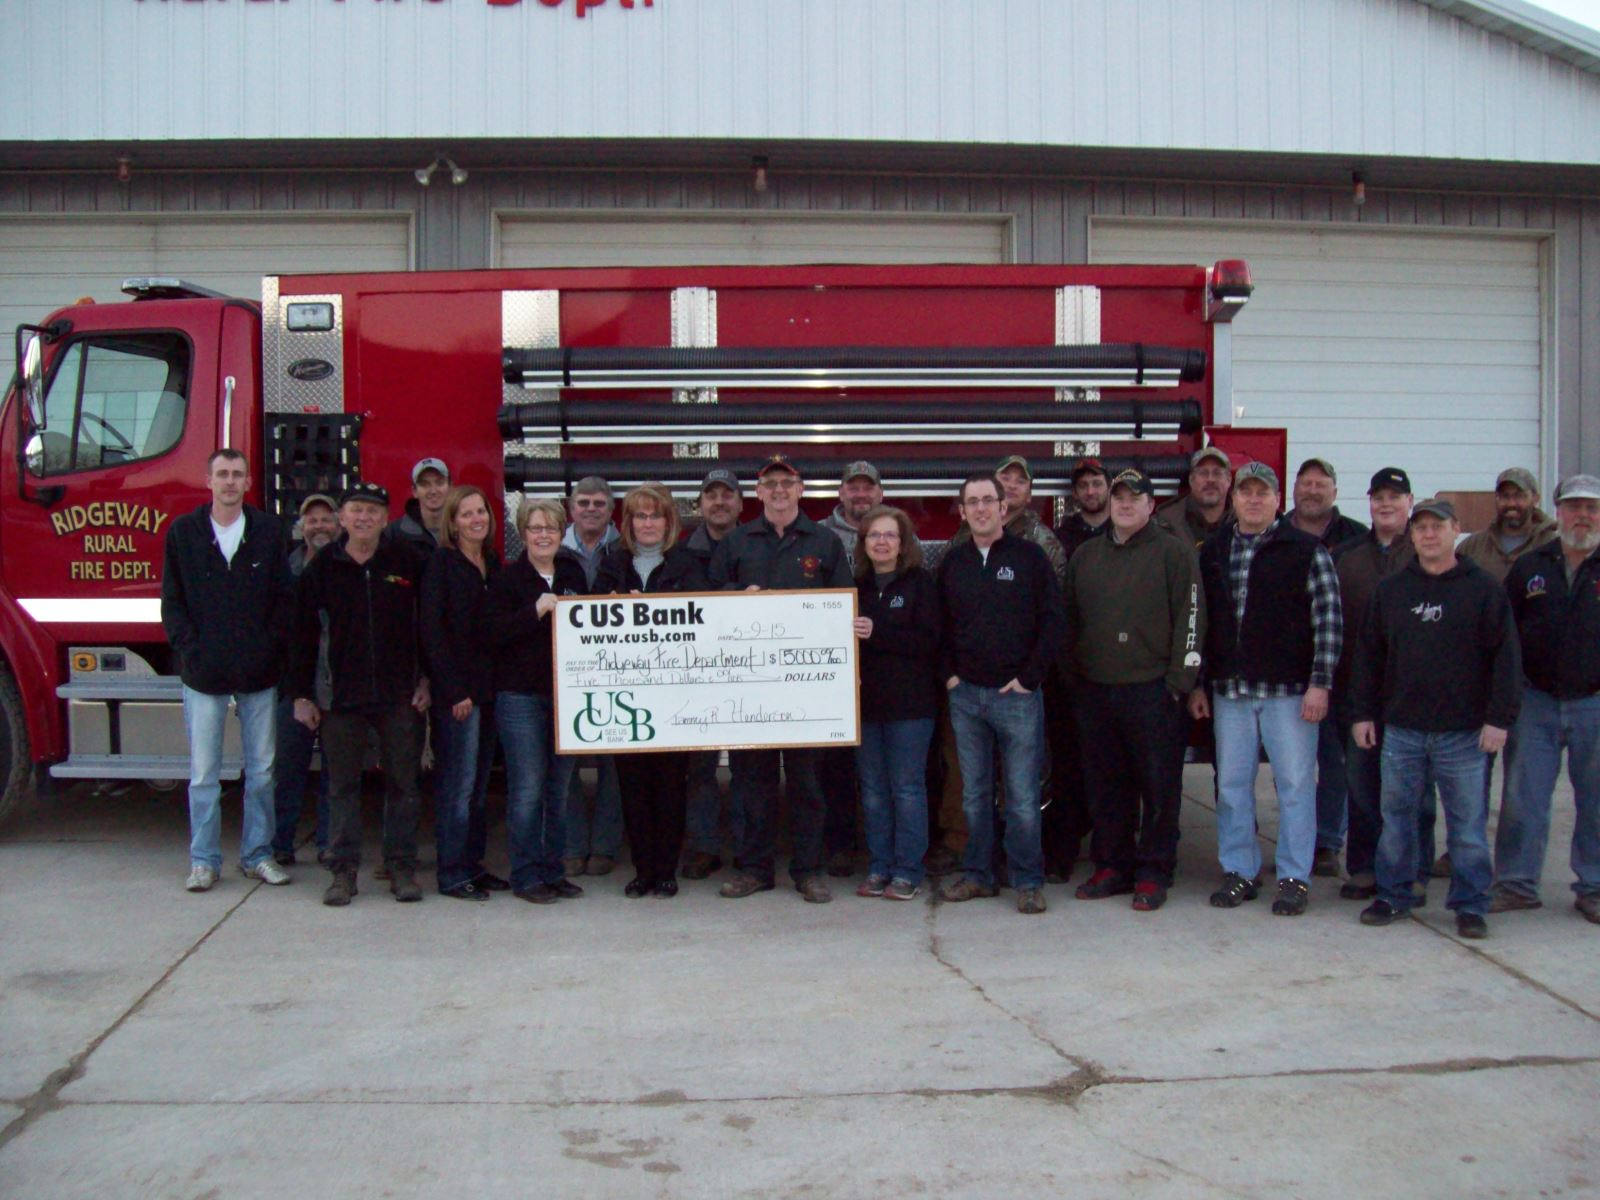 Ridgeway Fire Department Donation